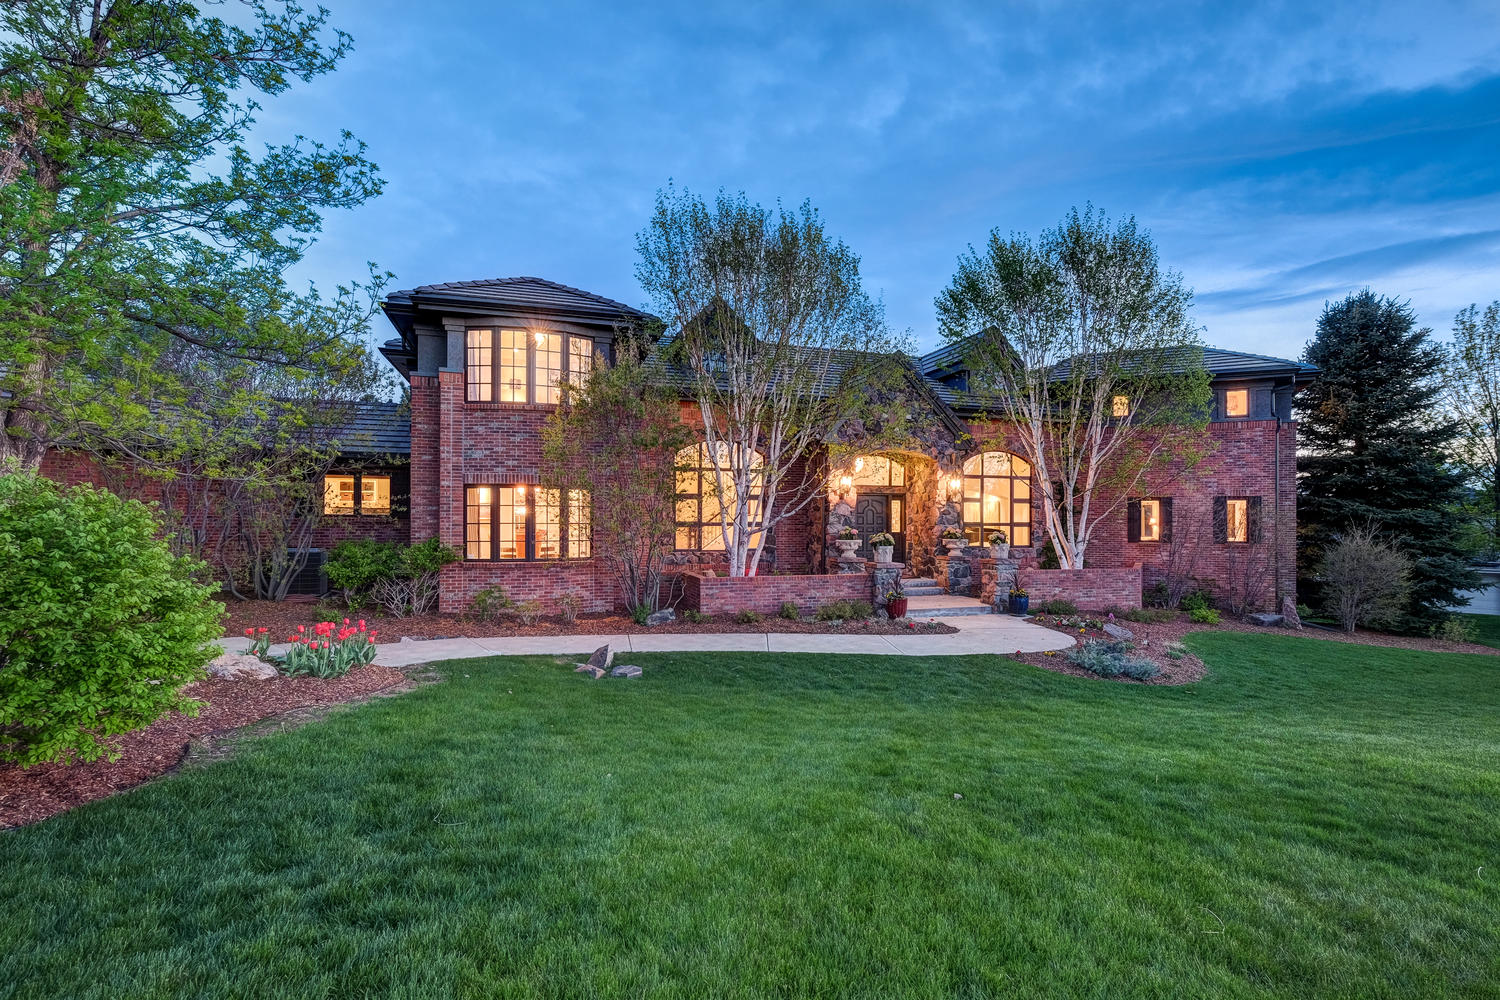 6776 Dorado Pl, Greenwood Village, CO 80111